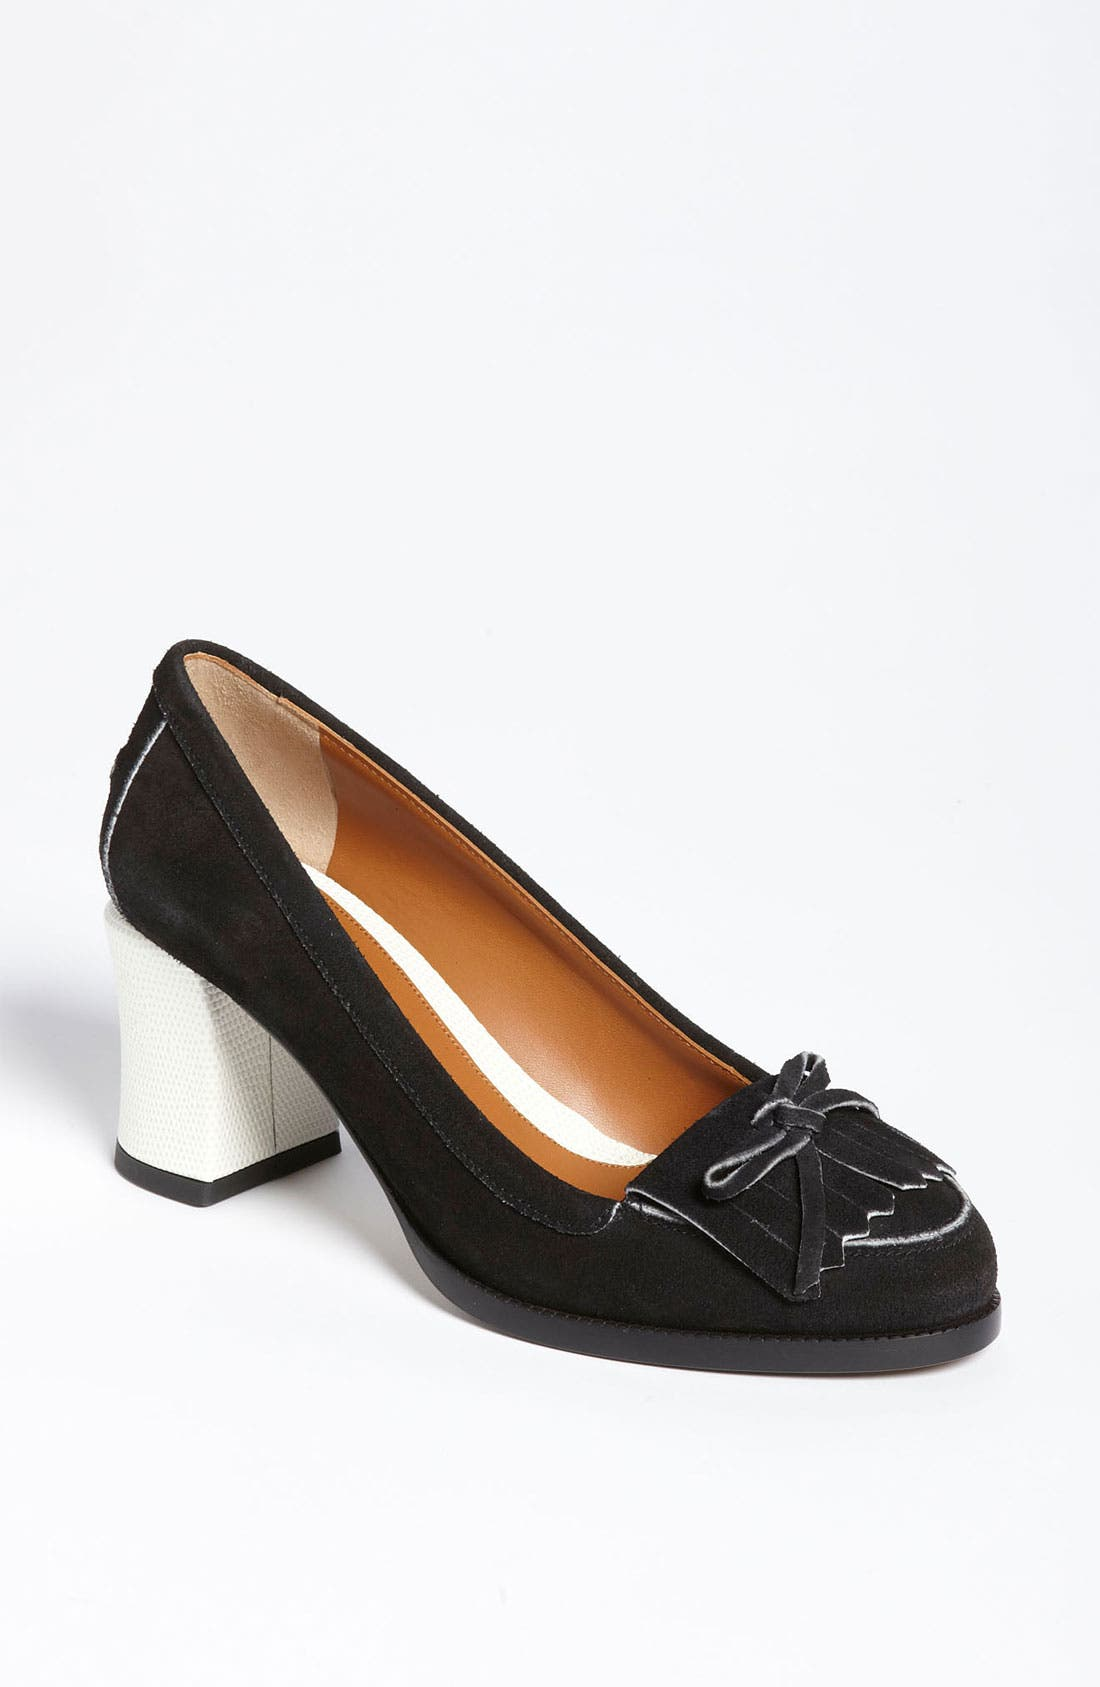 Main Image - Fendi 'Austen' Loafer Pump